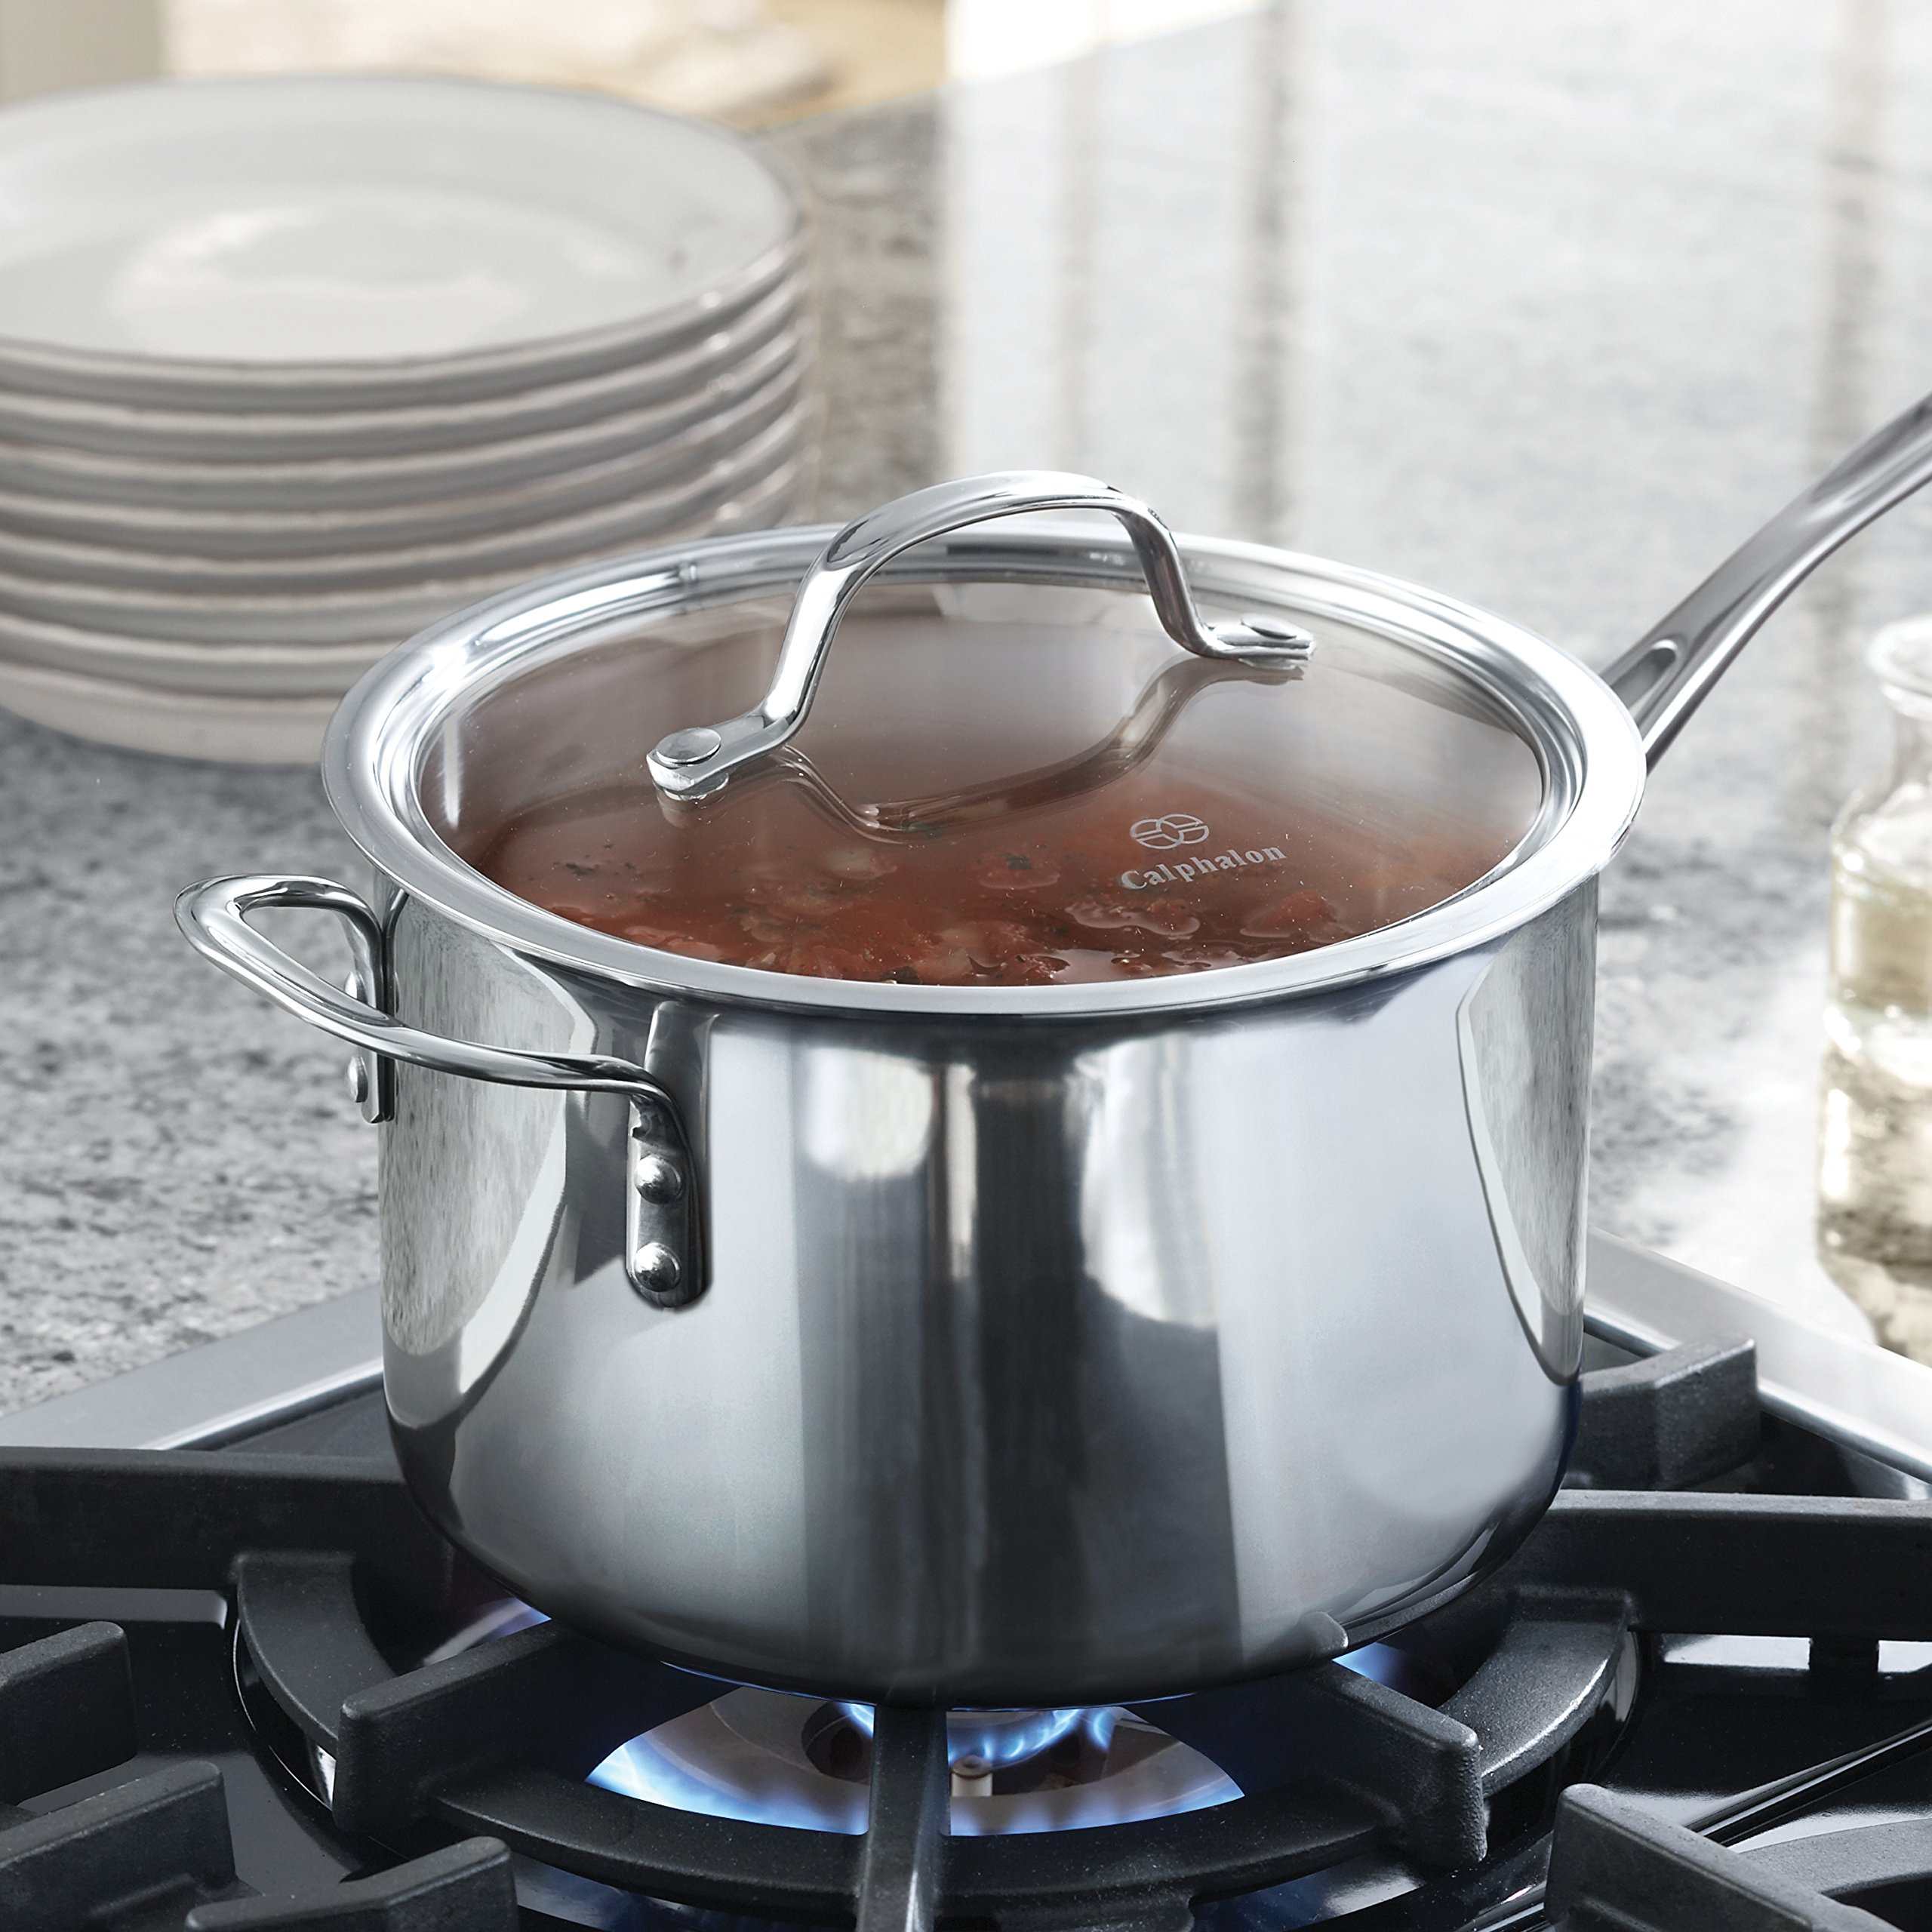 Calphalon Tri-Ply Stainless Steel 4-1/2-Quart Sauce Pan with Cover by Calphalon (Image #5)